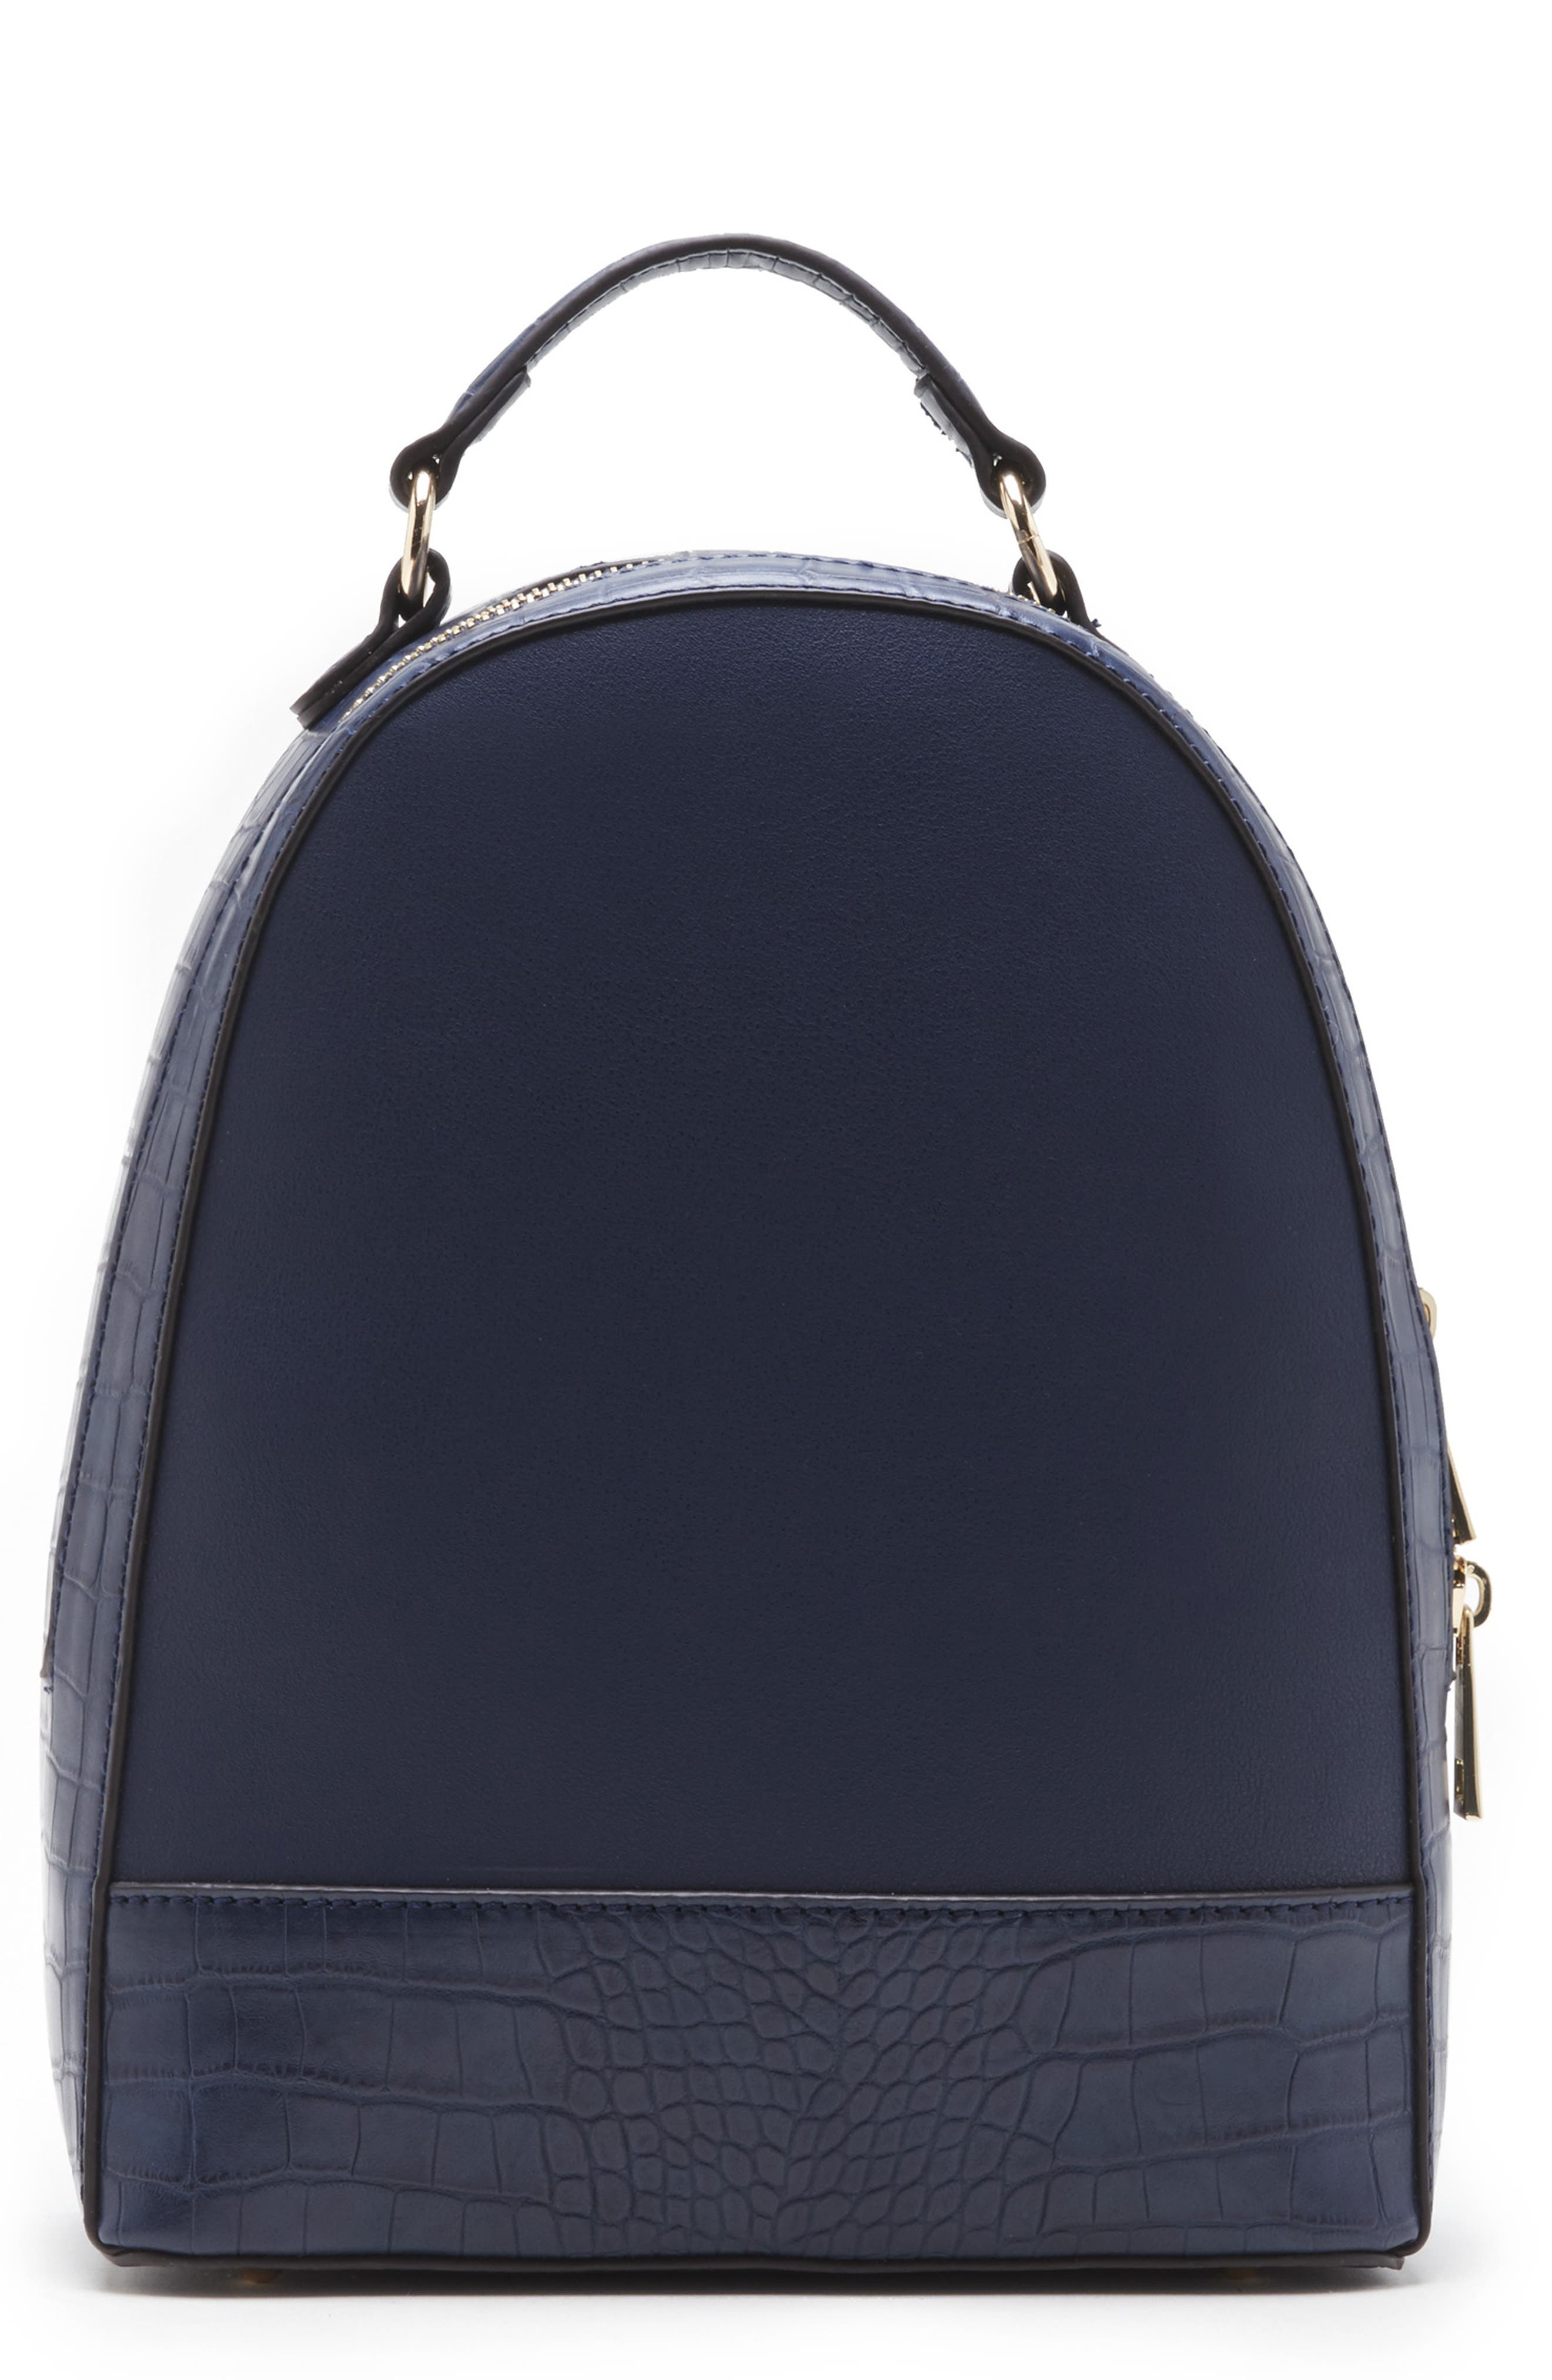 SOLE SOCIETY Jamya Croc Embossed Faux Leather Backpack, Main, color, MIDNIGHT